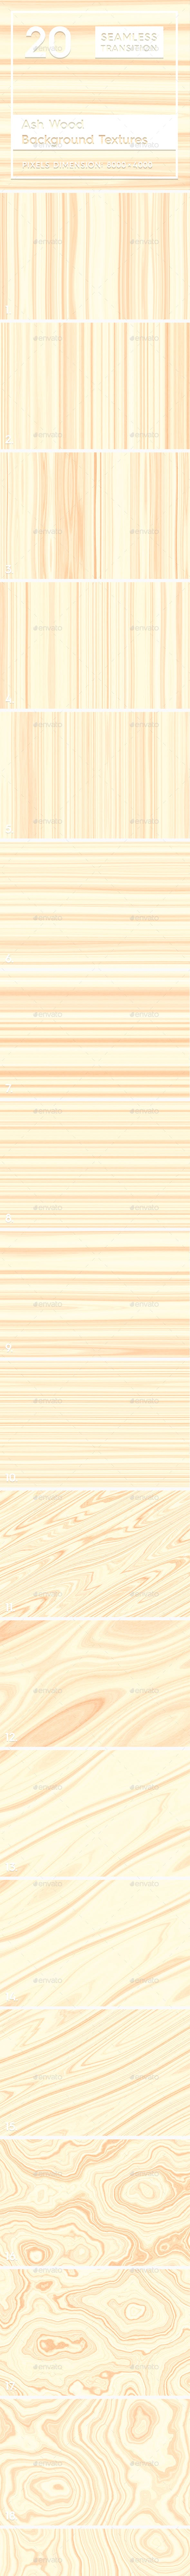 20 Basswood Wood Background Textures - 3DOcean Item for Sale